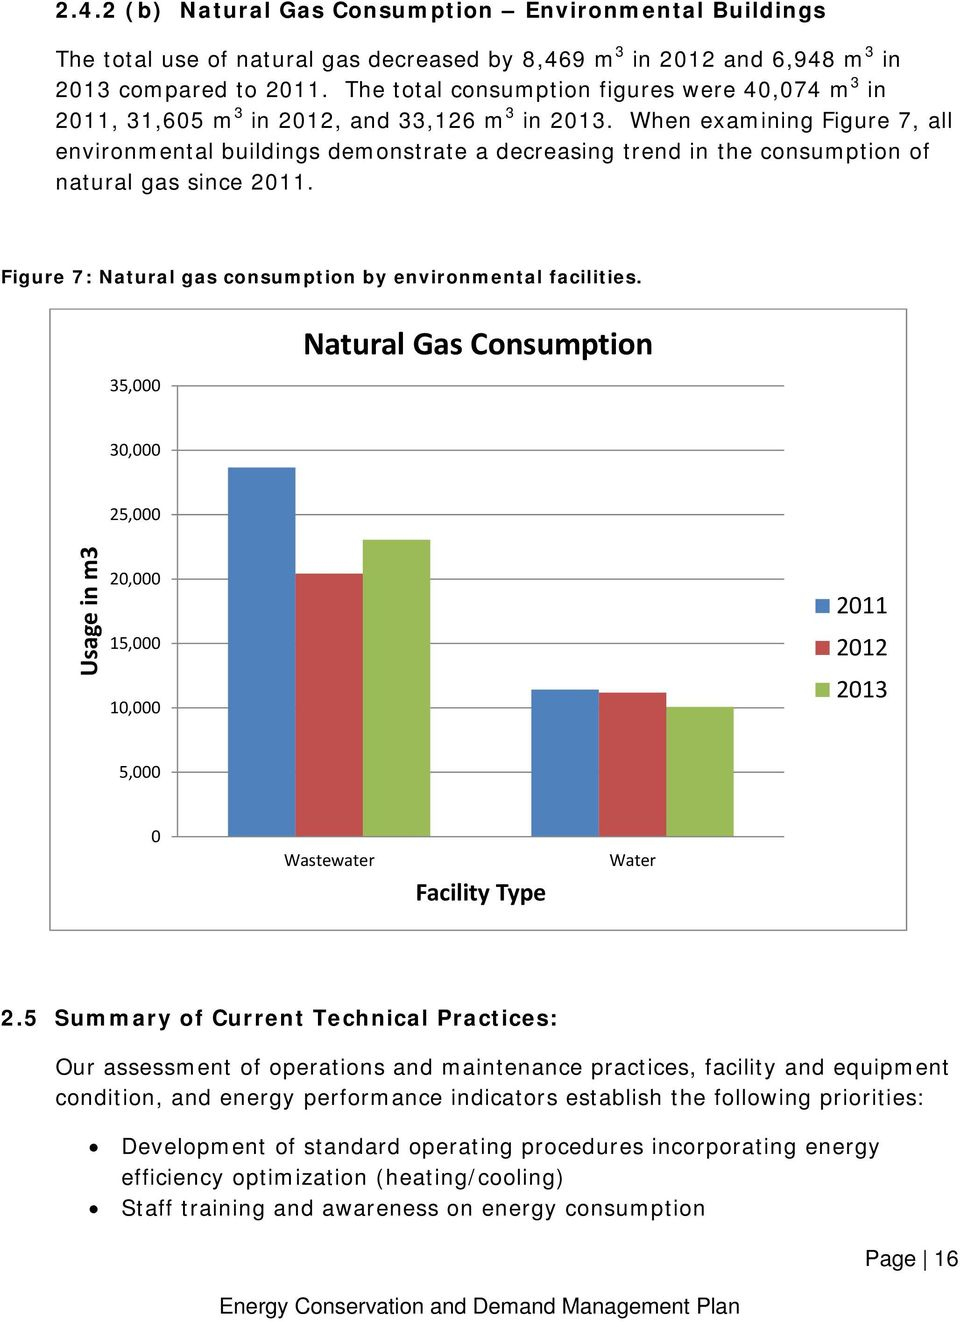 When examining Figure 7, all environmental buildings demonstrate a decreasing trend in the consumption of natural gas since 2011. Figure 7: Natural gas consumption by environmental facilities.